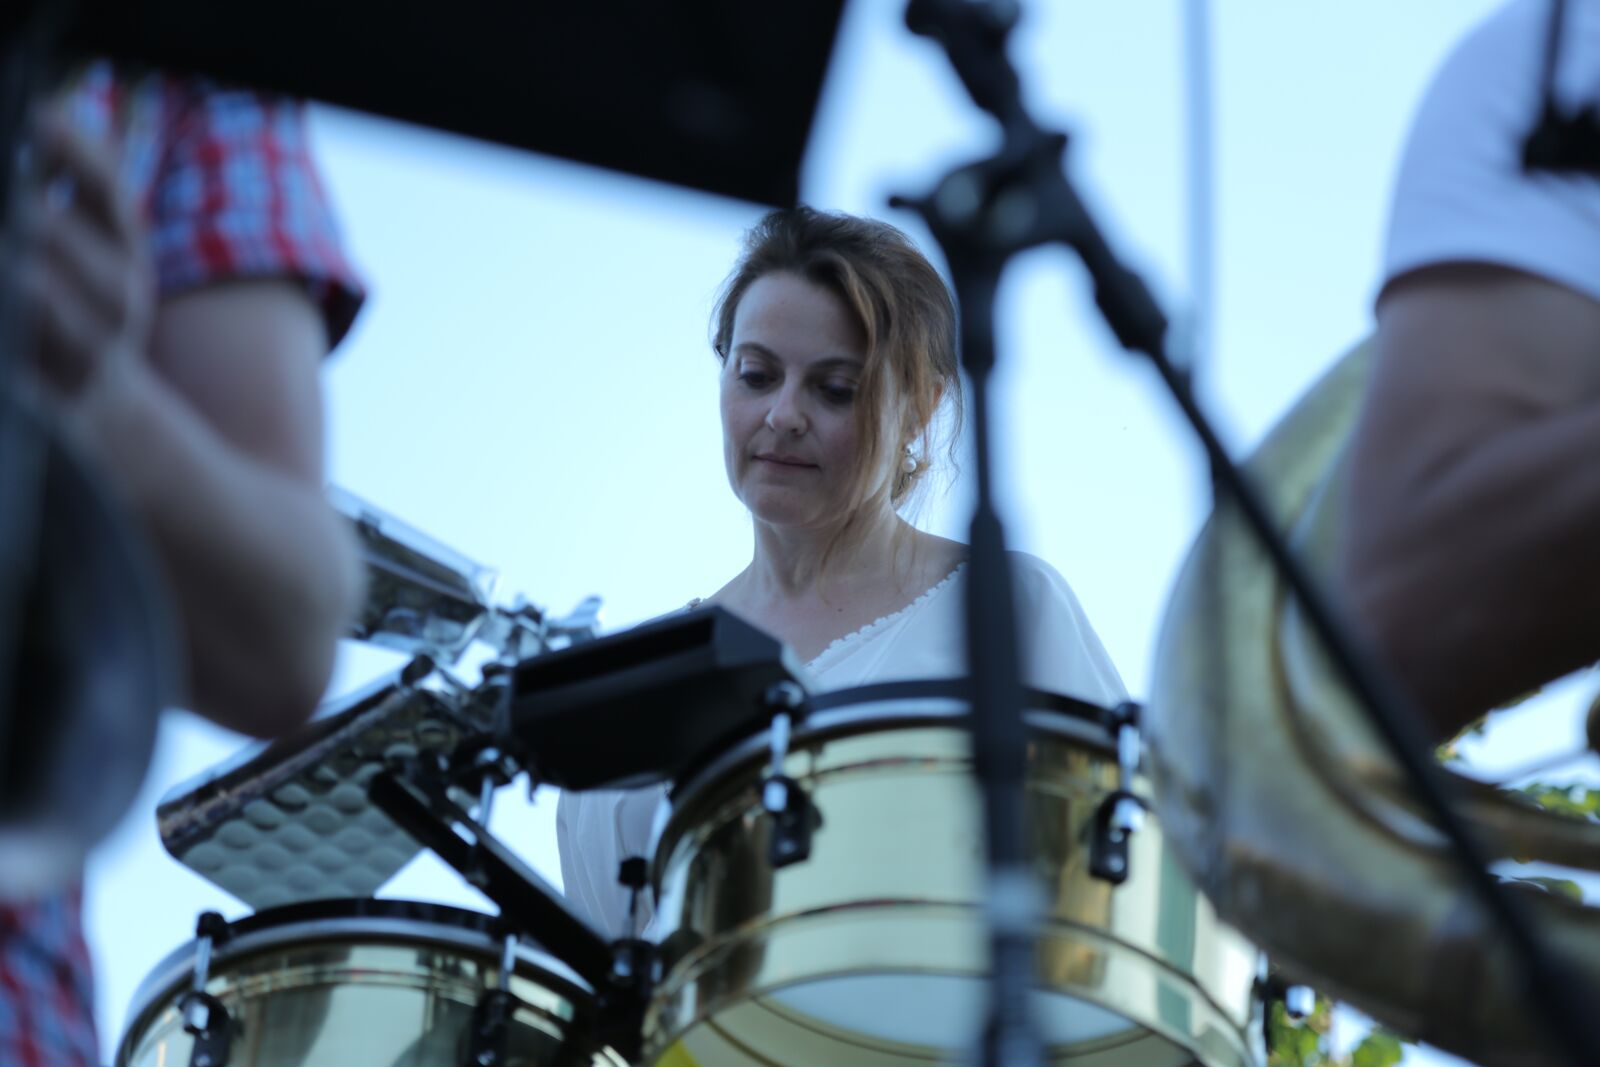 Sandra on timbales